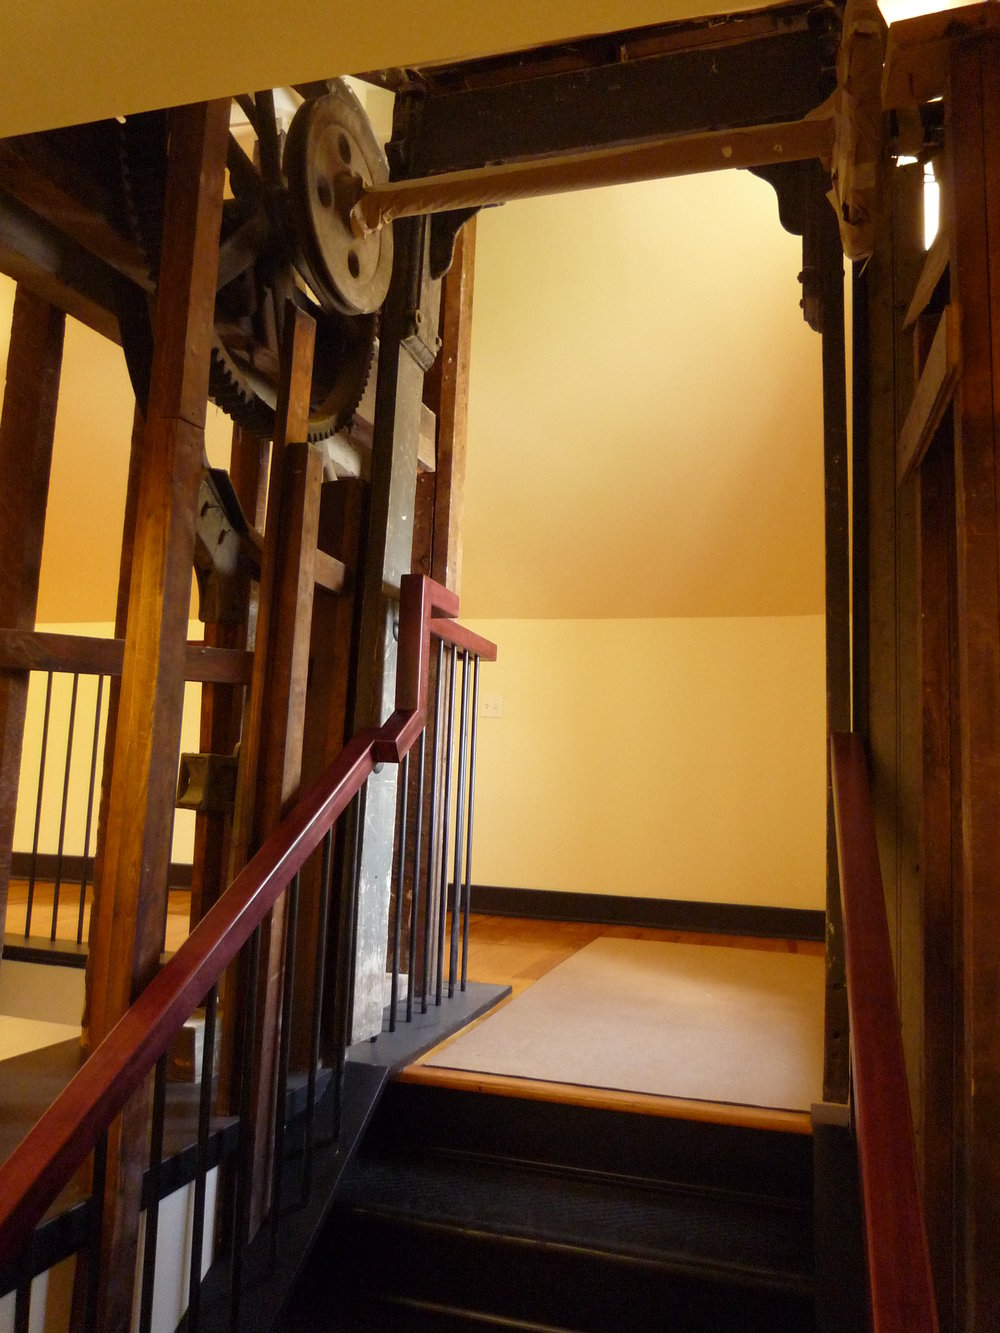 Elevator Entrance - Top of Stairs